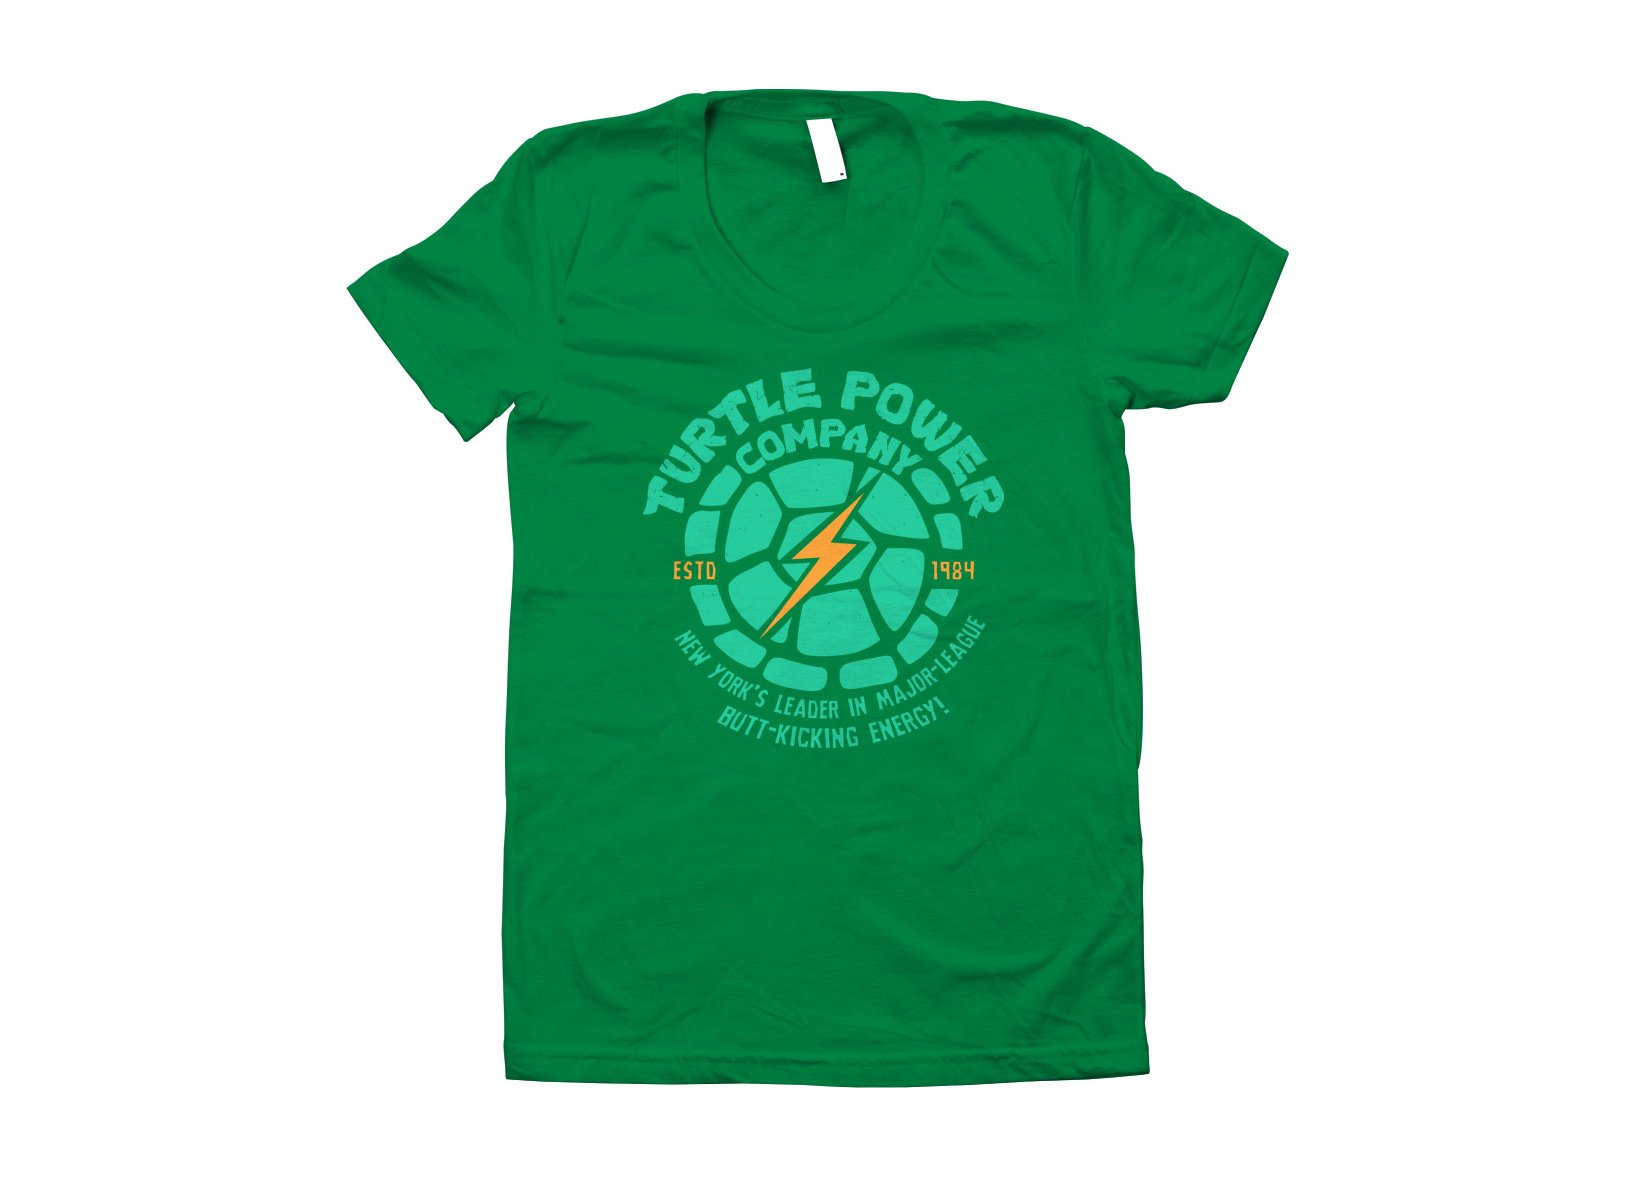 Turtle Power Company on Juniors T-Shirt